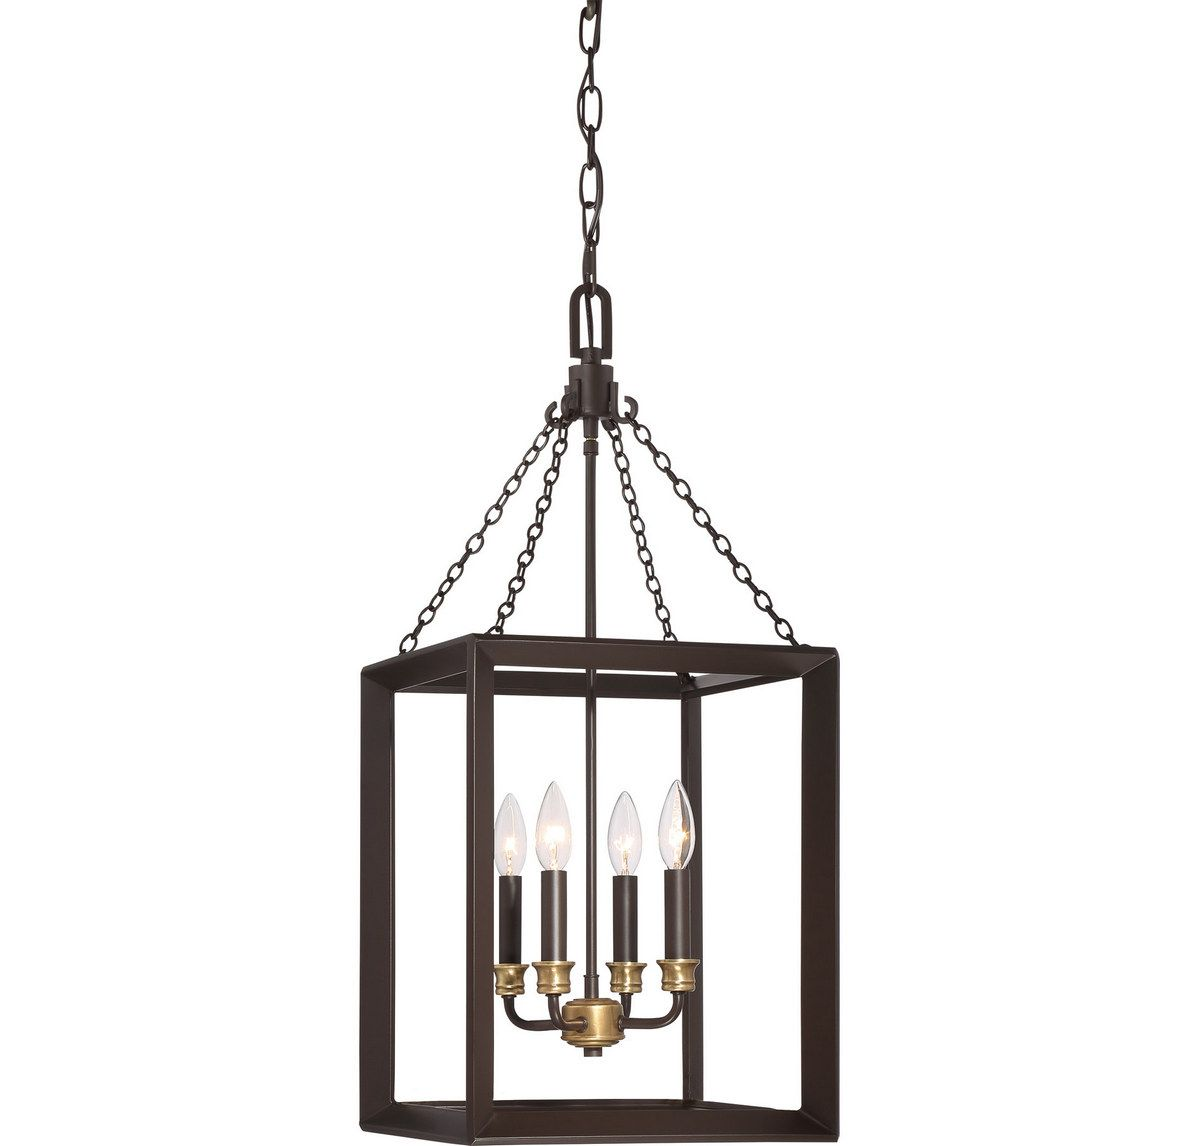 Quoizel Brook Hall 4-Light Cage Chandelier In Western